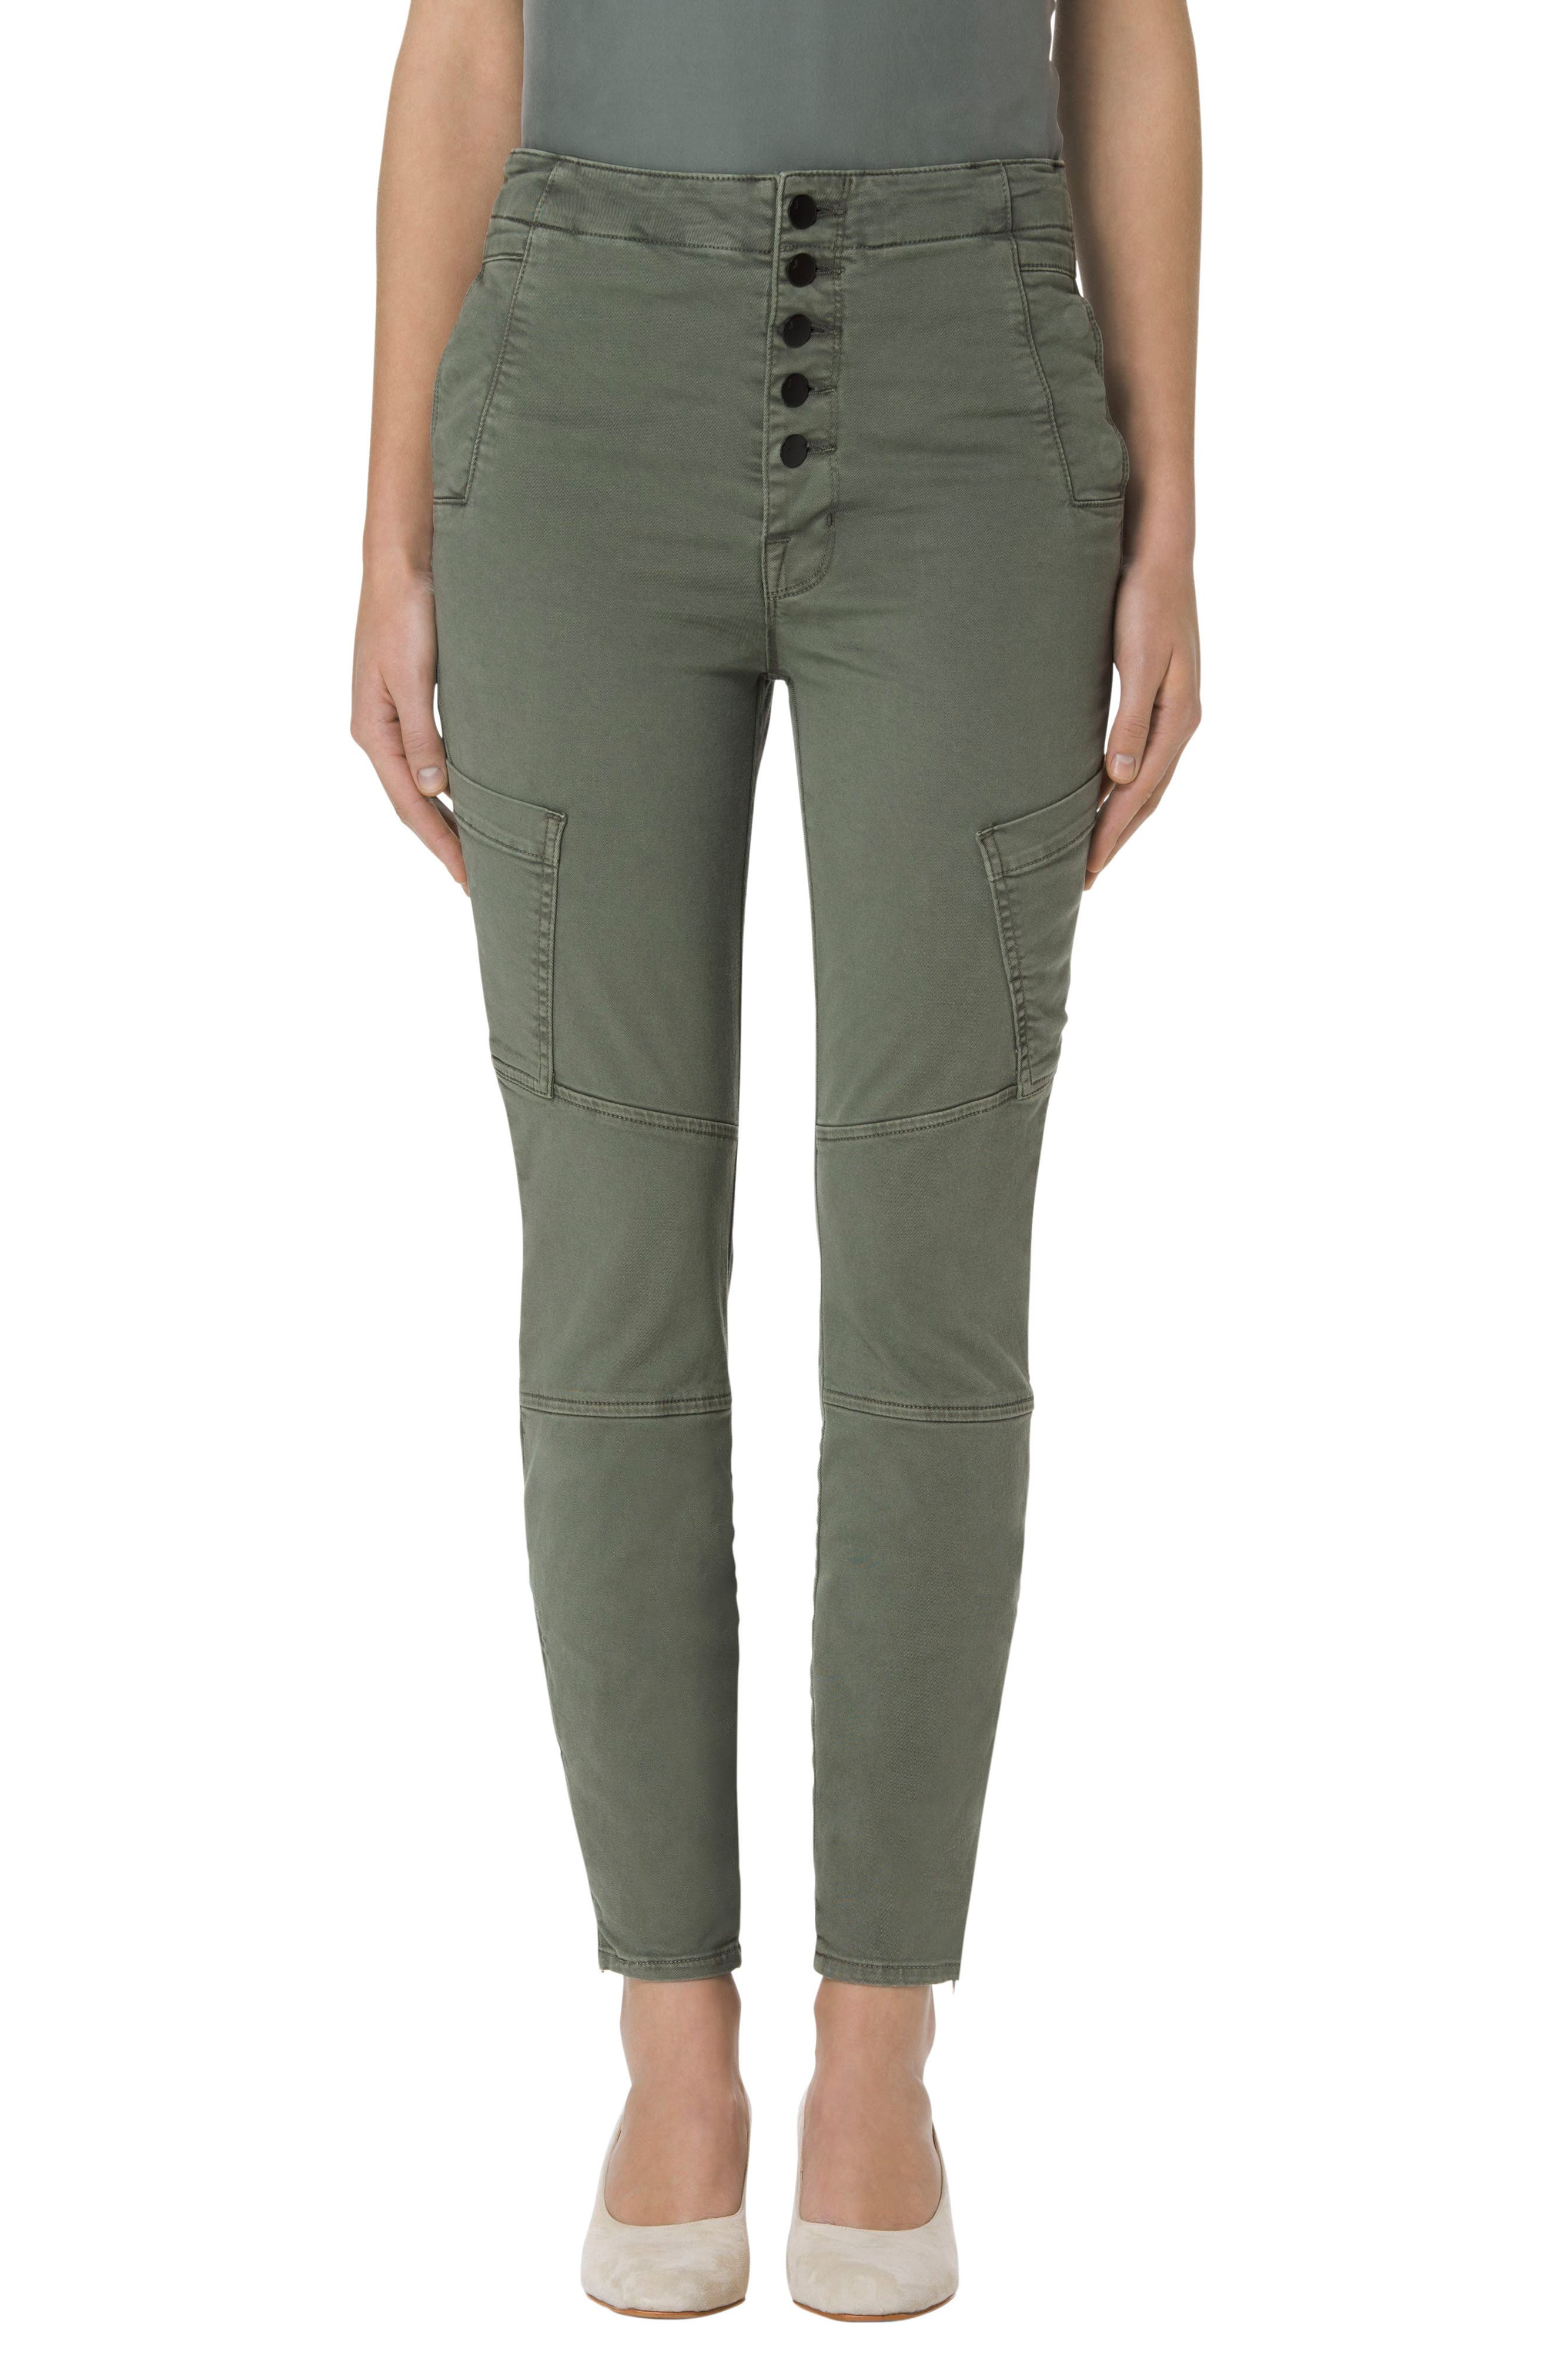 J BRAND Brigitte Sky High Crop Utility Pants